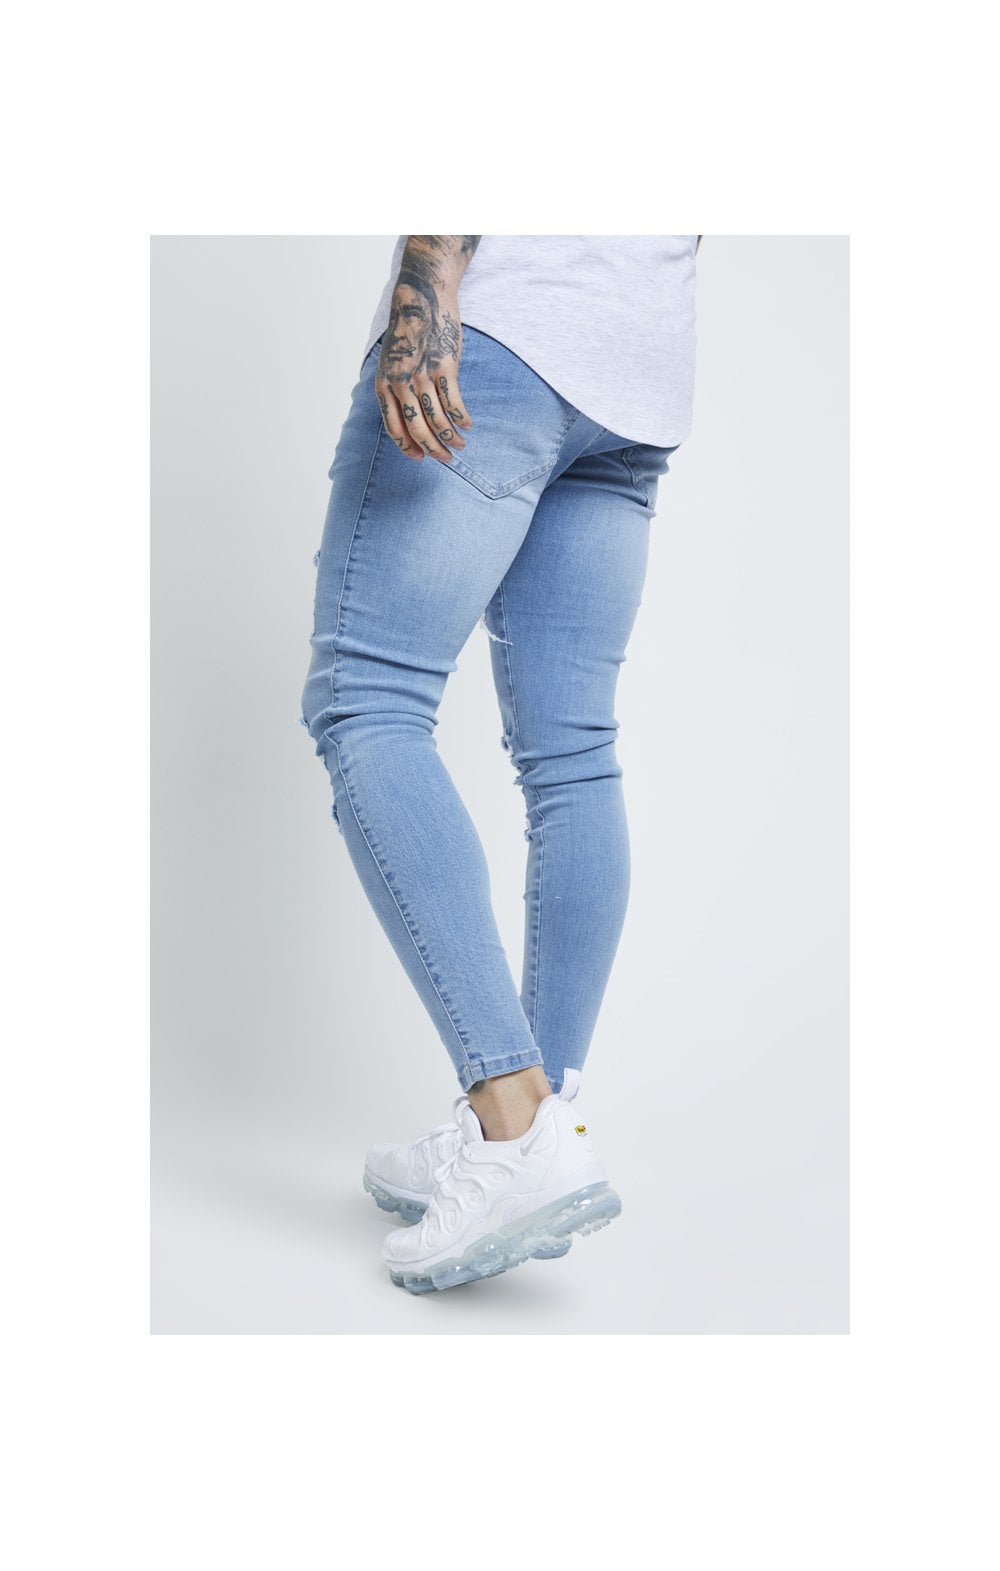 Load image into Gallery viewer, SikSilk Distressed Skinny Jeans – Light Wash (3)